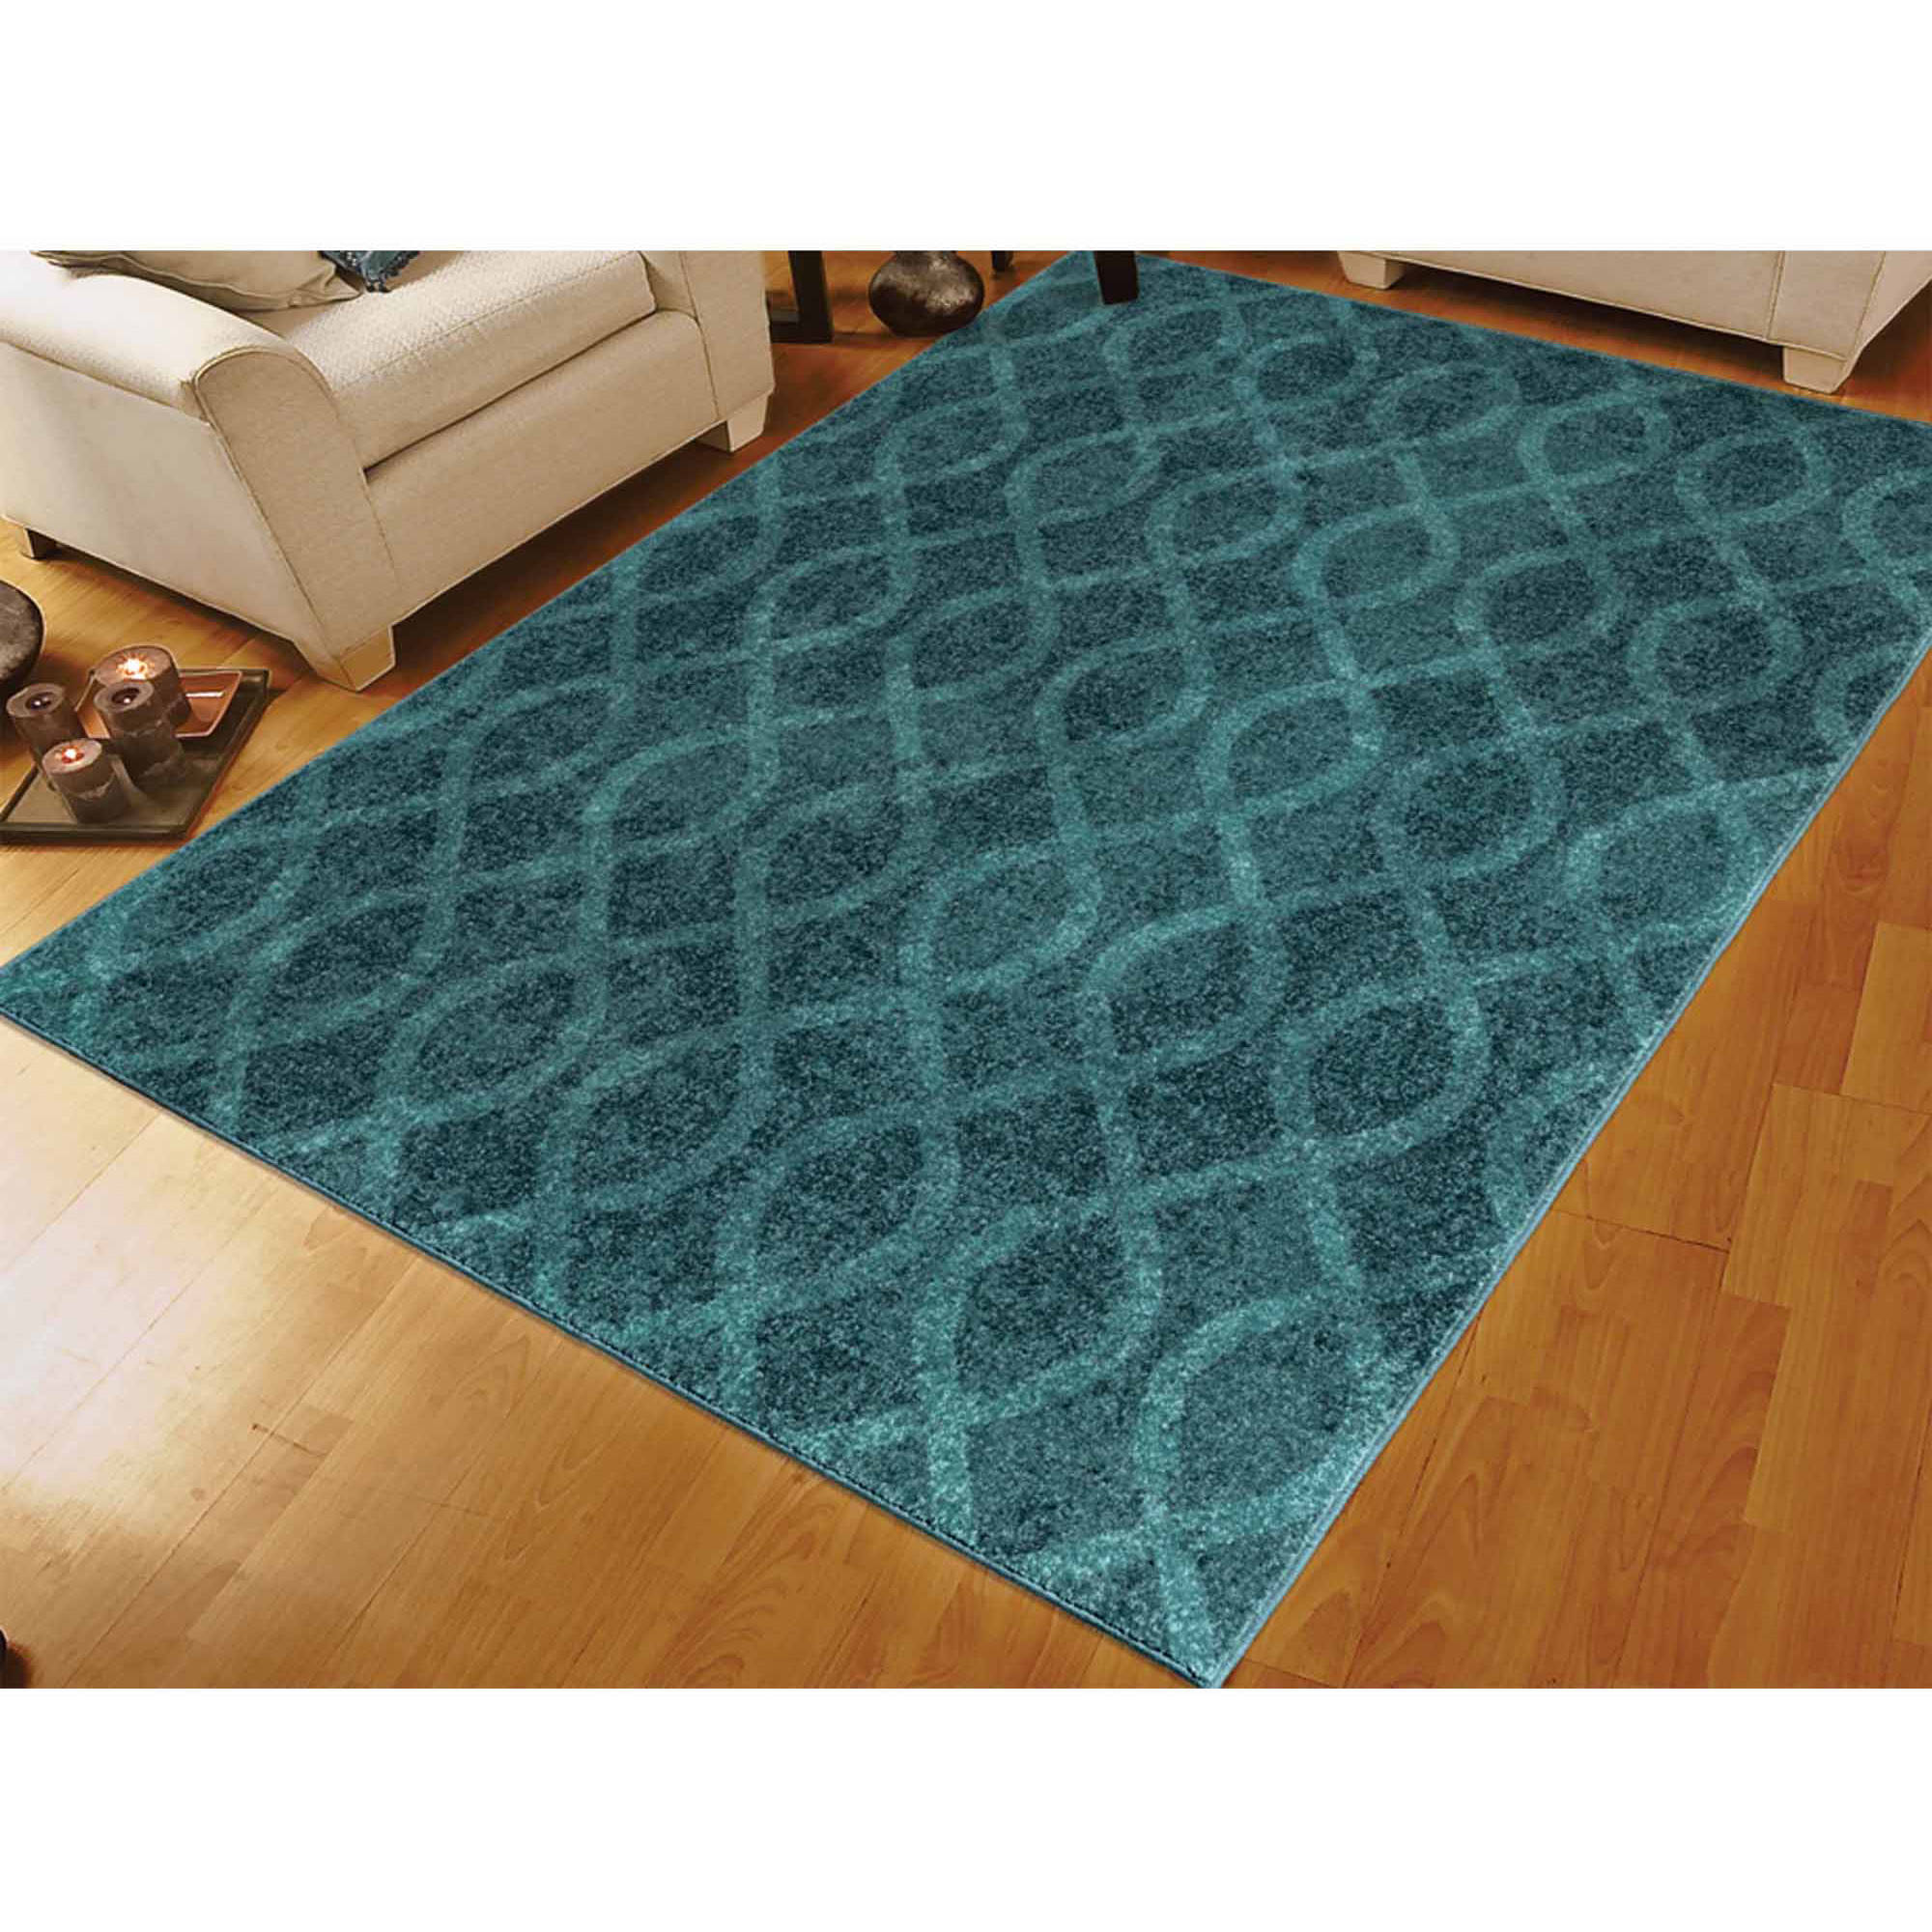 Orian Rugs Reckless Medallion Aqua Area Rug Walmart Com